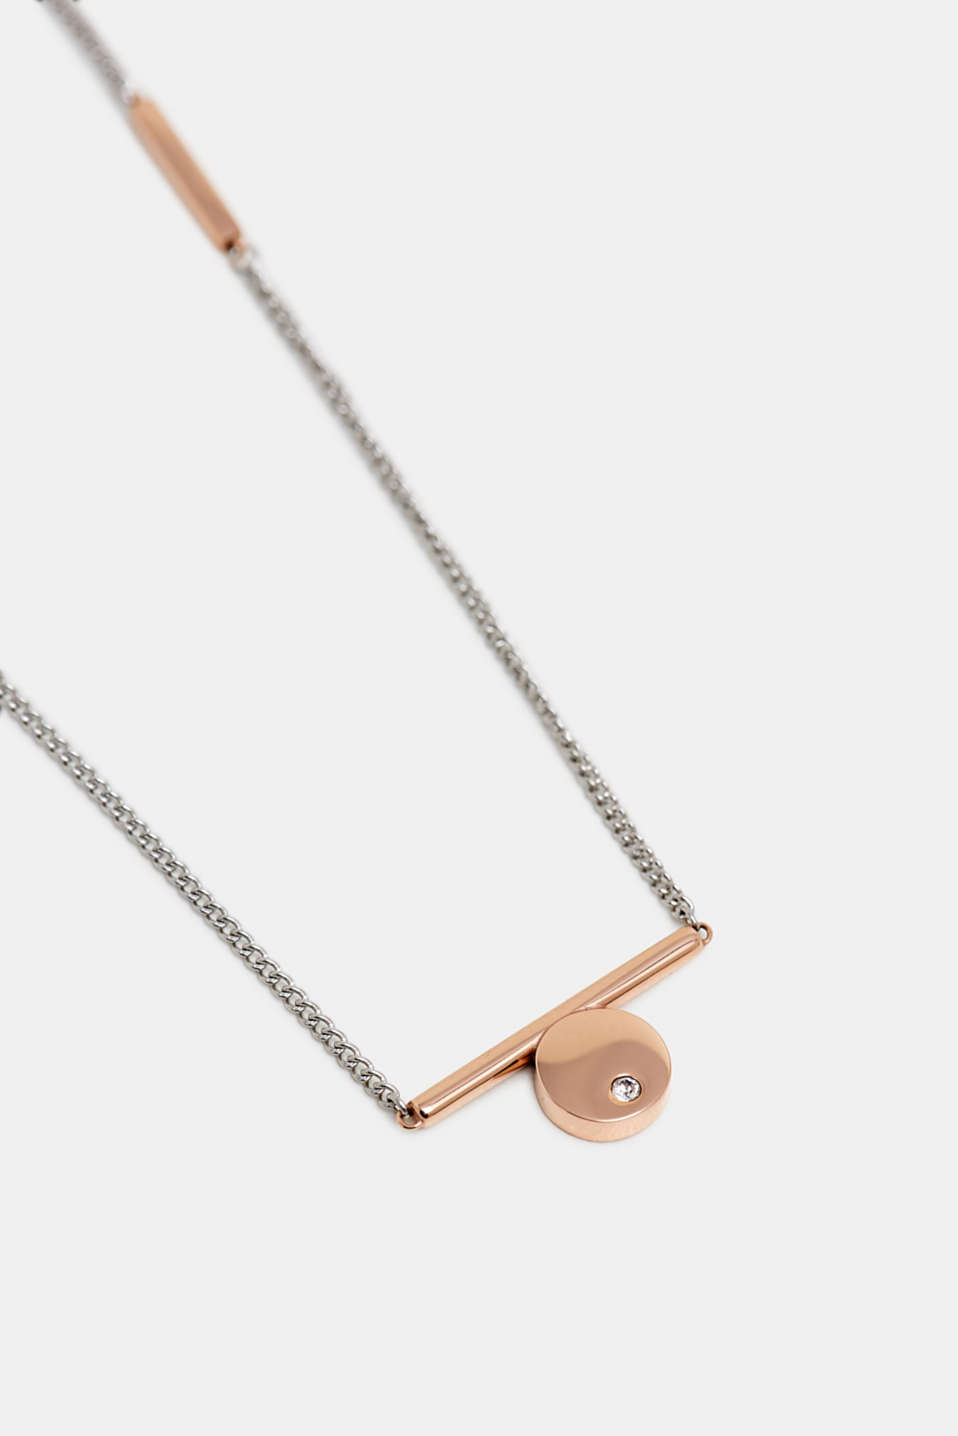 Necklace with a rose gold pendant, made of stainless steel, SILVER, detail image number 1